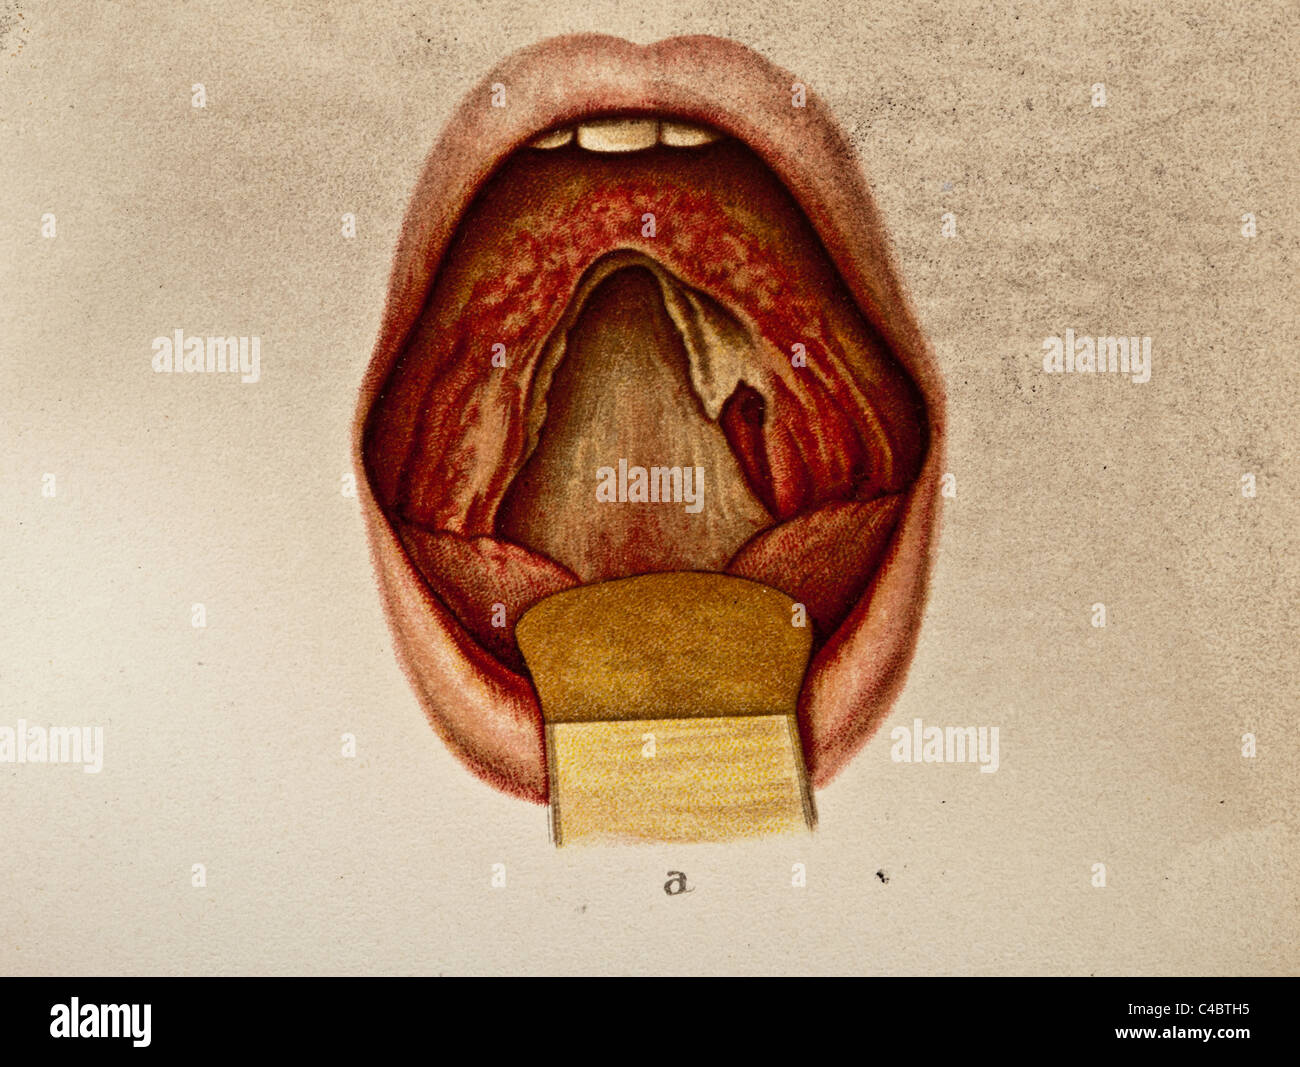 Soft Palate Mouth Stock Photos & Soft Palate Mouth Stock Images - Alamy